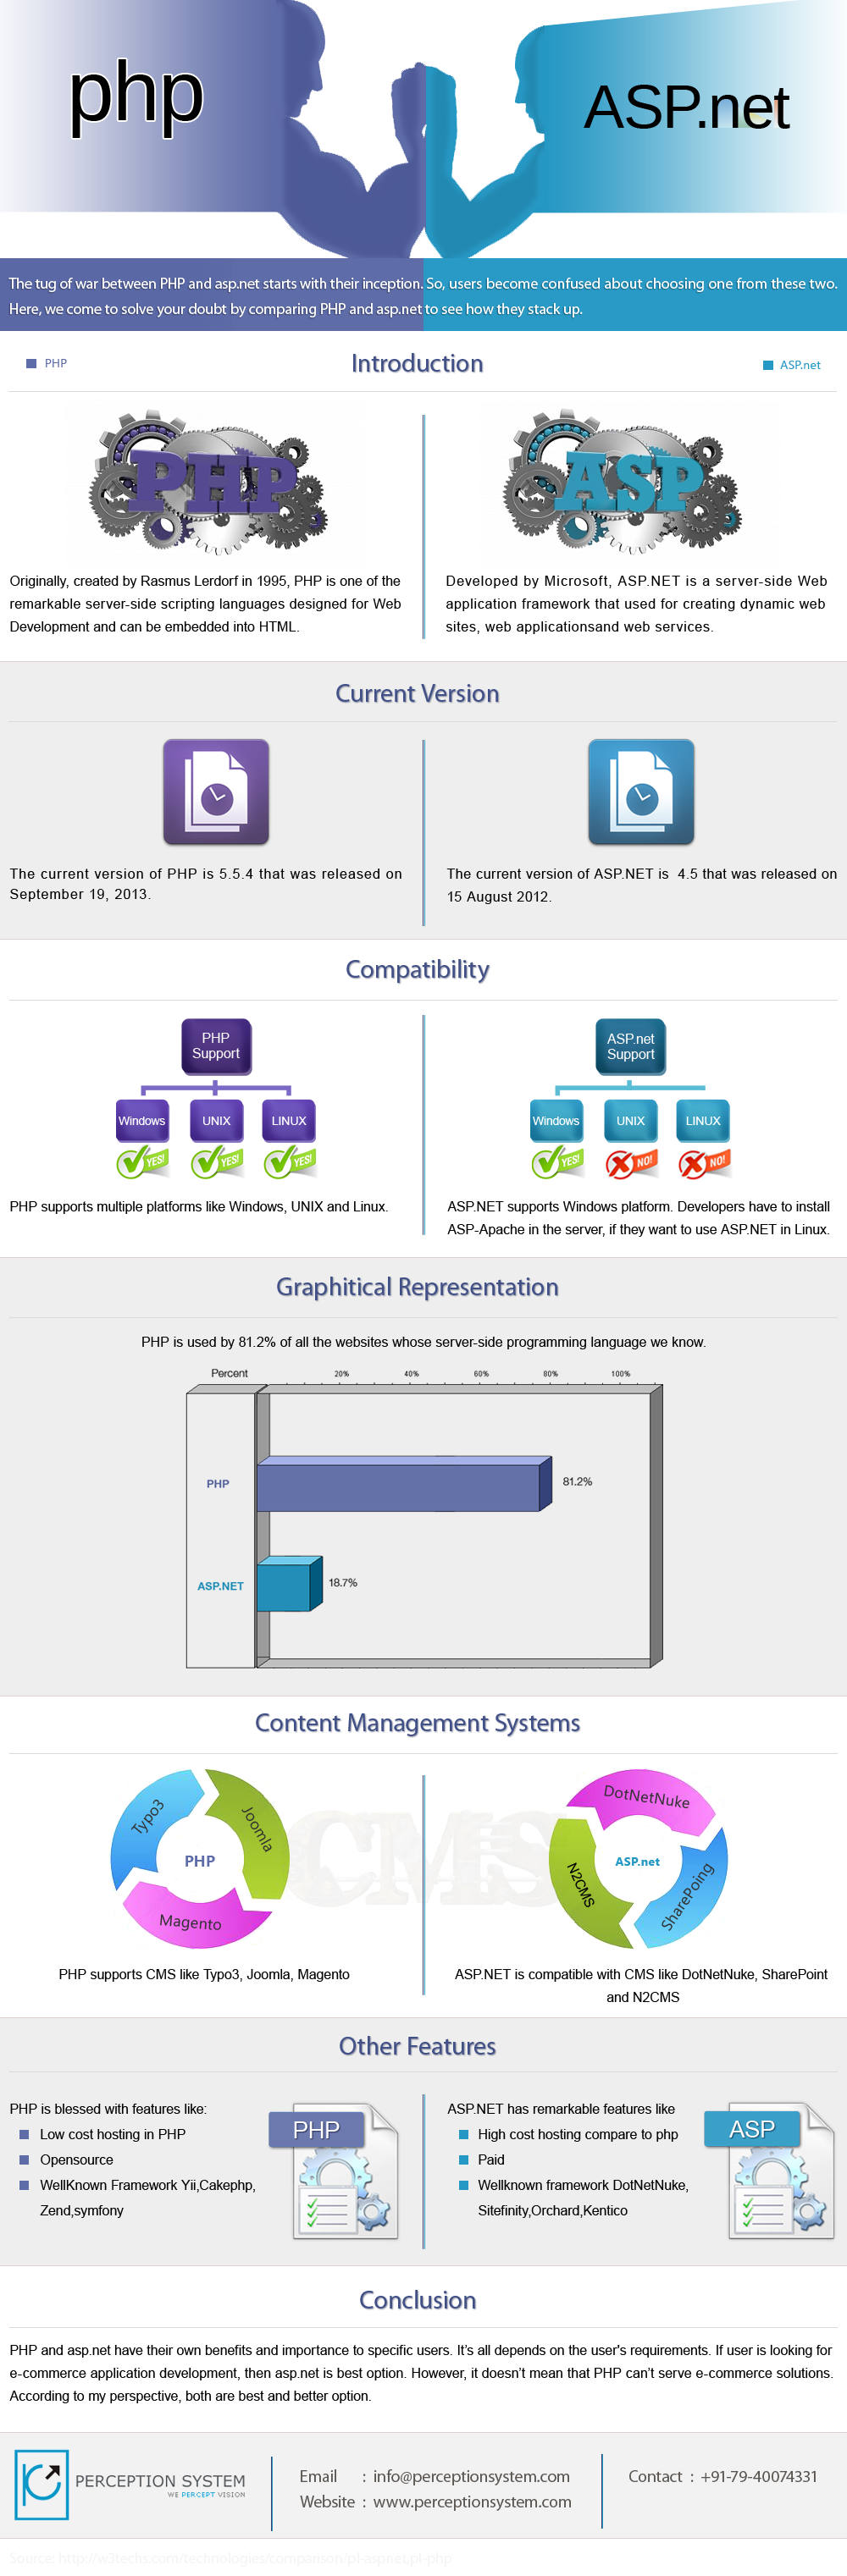 Conditional Values And Styles In GridView   C  on platform ASP NET    Pinterest. Conditional Values And Styles In GridView   C  on platform ASP NET